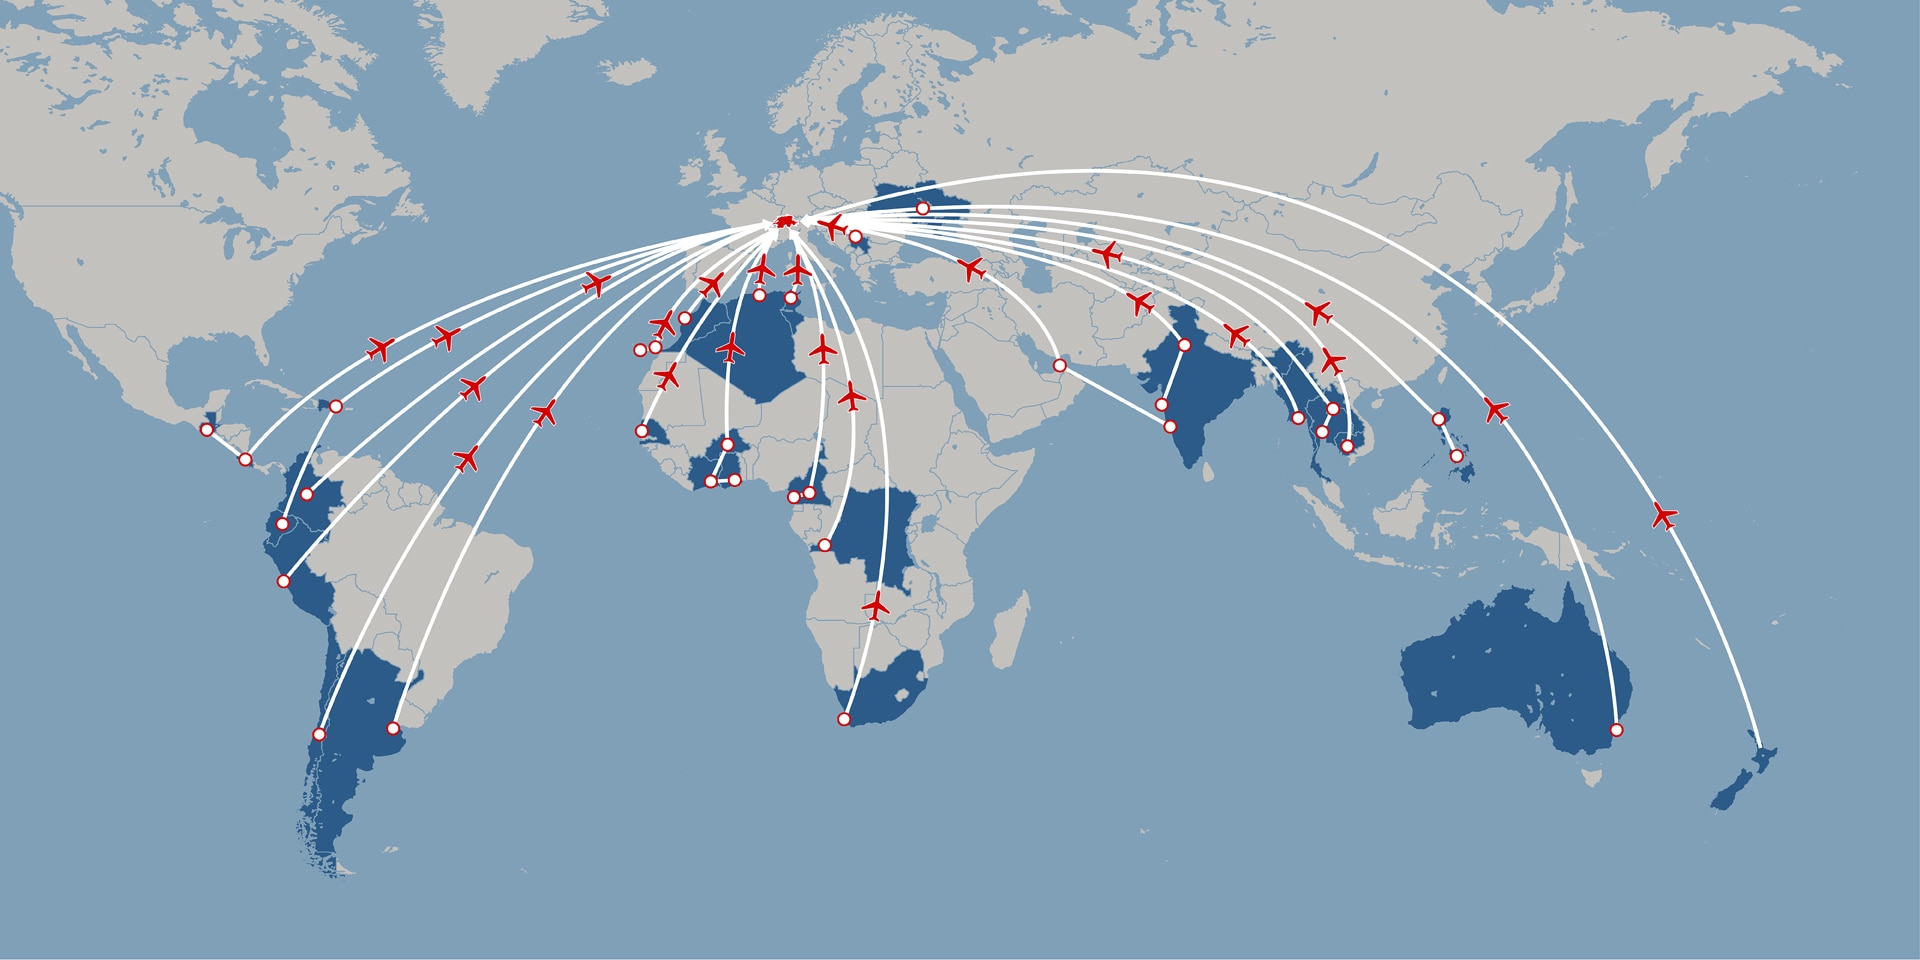 Map of the world showing the destinations of repatriation flights.